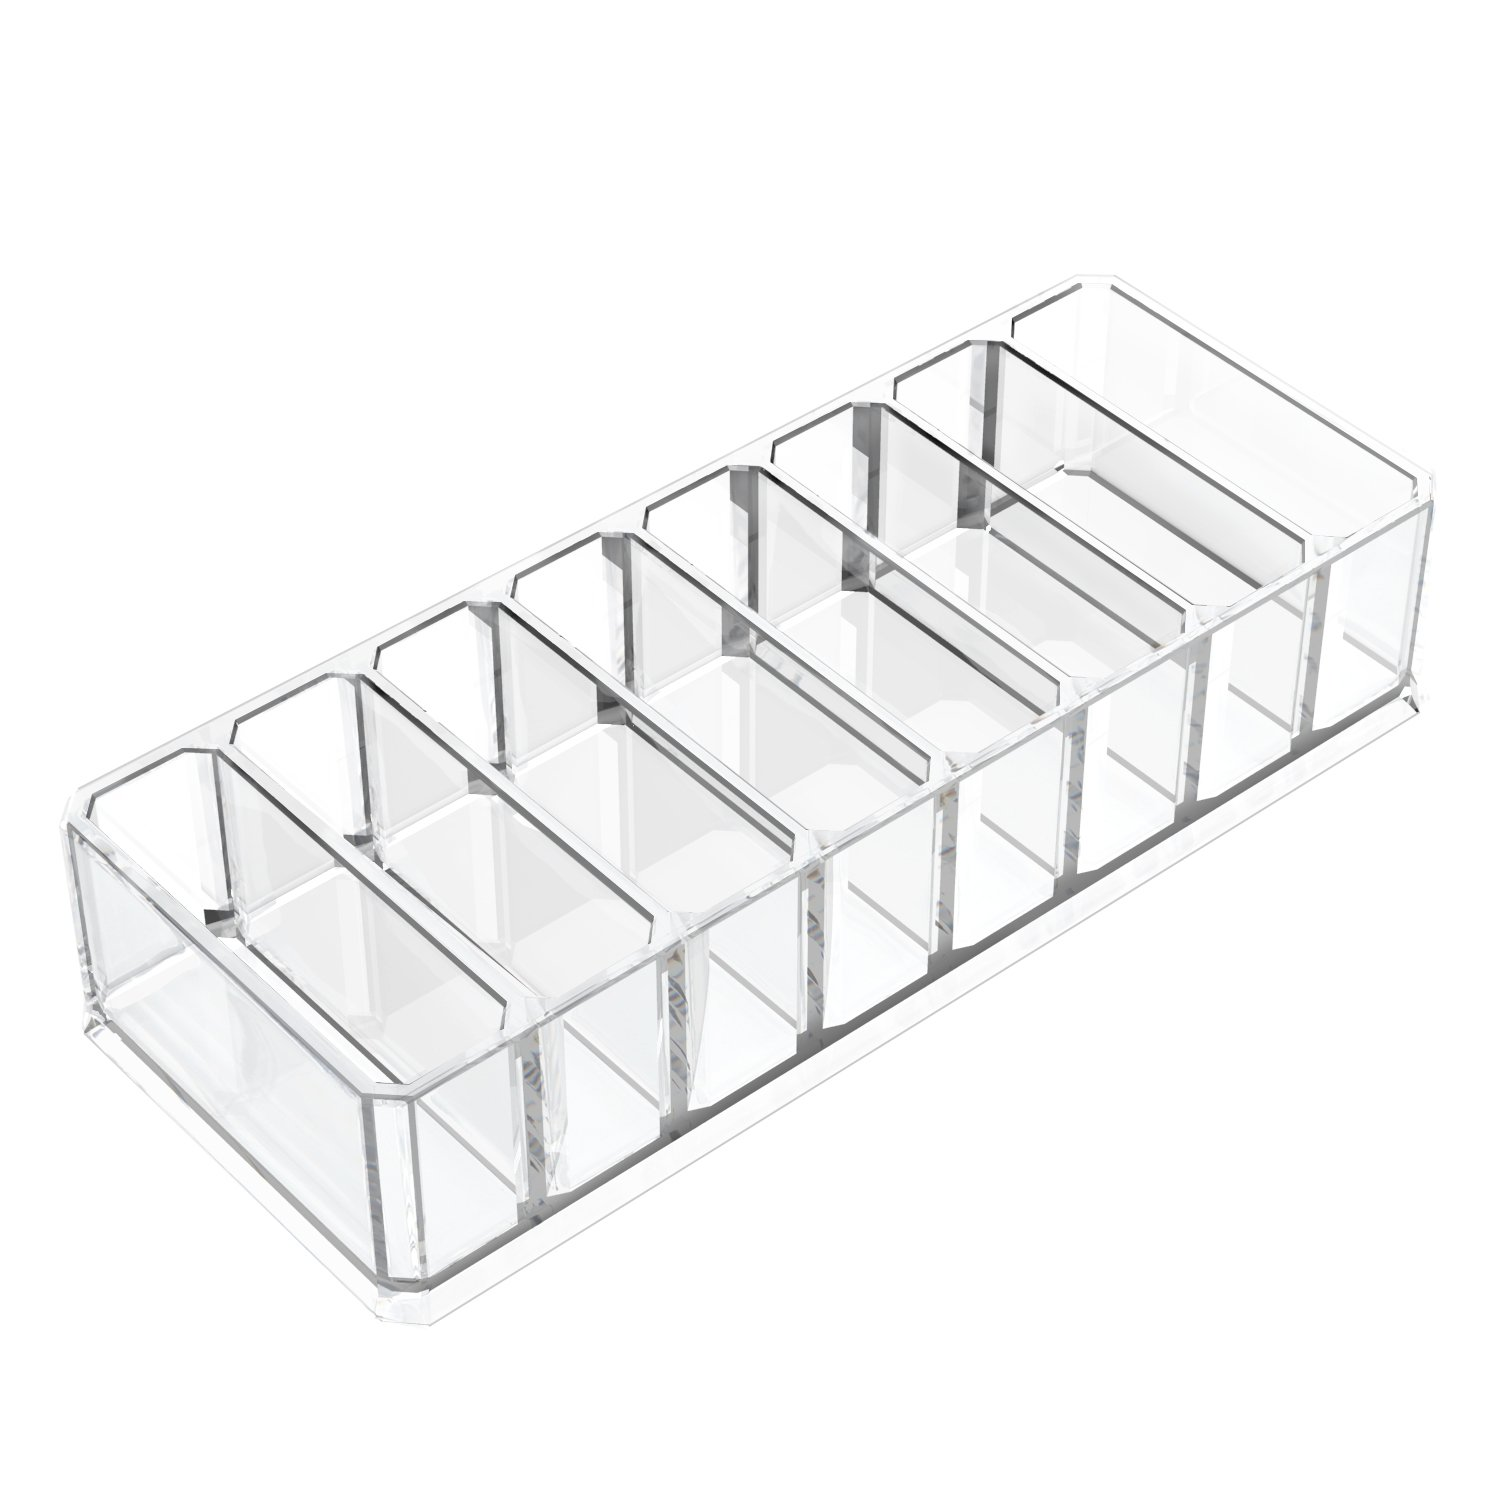 Acrylic Makeup Compact Powder Holder, Luxspire 8 Spaces Organizer Display Stand Cosmetic Makeup Storage Box for Cosmetics, Lipsticks, Blushes, Jewelries, and more